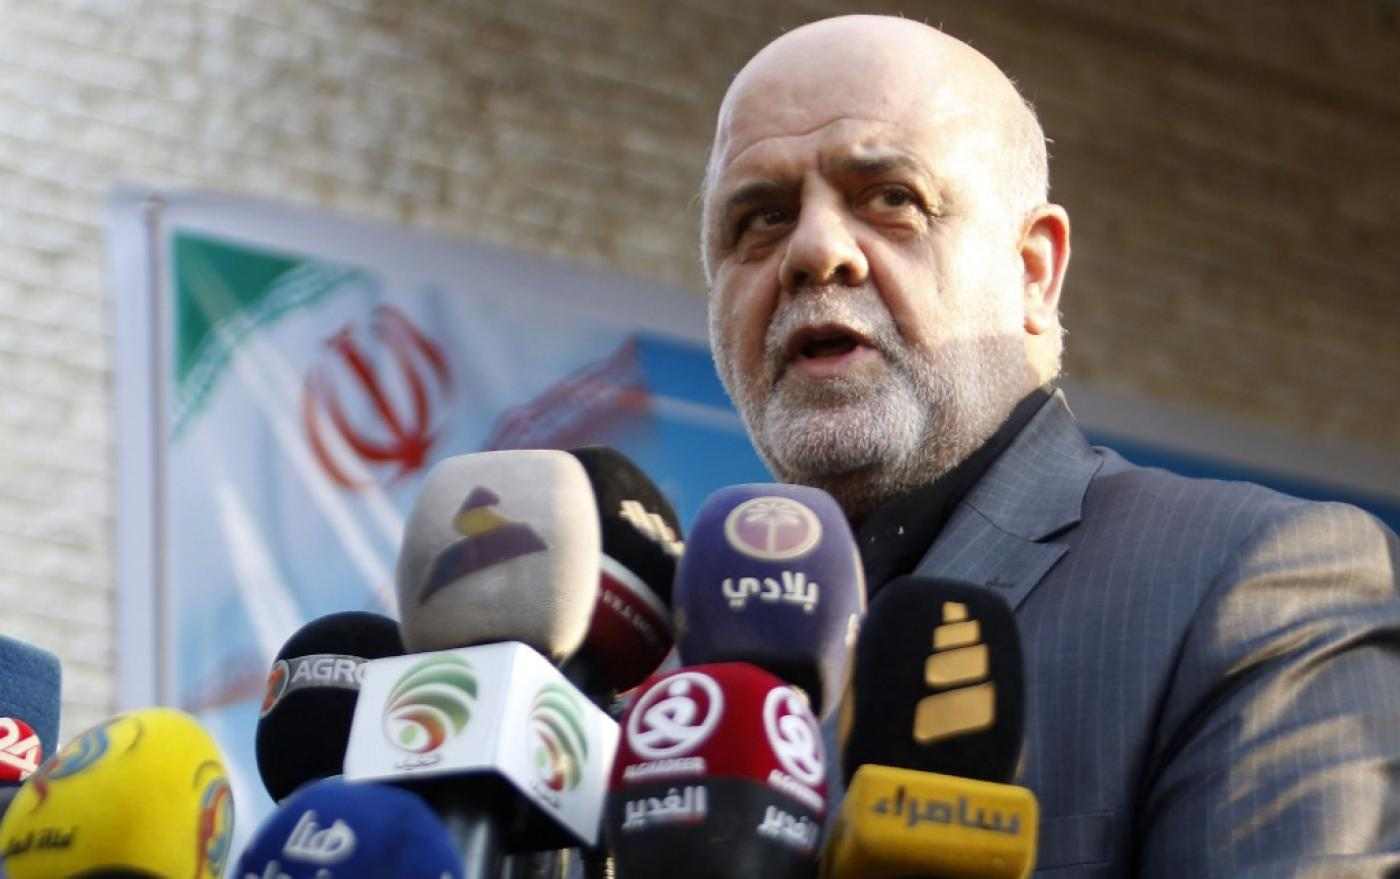 Iran's ambassador to Iraq Iraj Masjedi has been blacklisted in the latest round of US sanctions